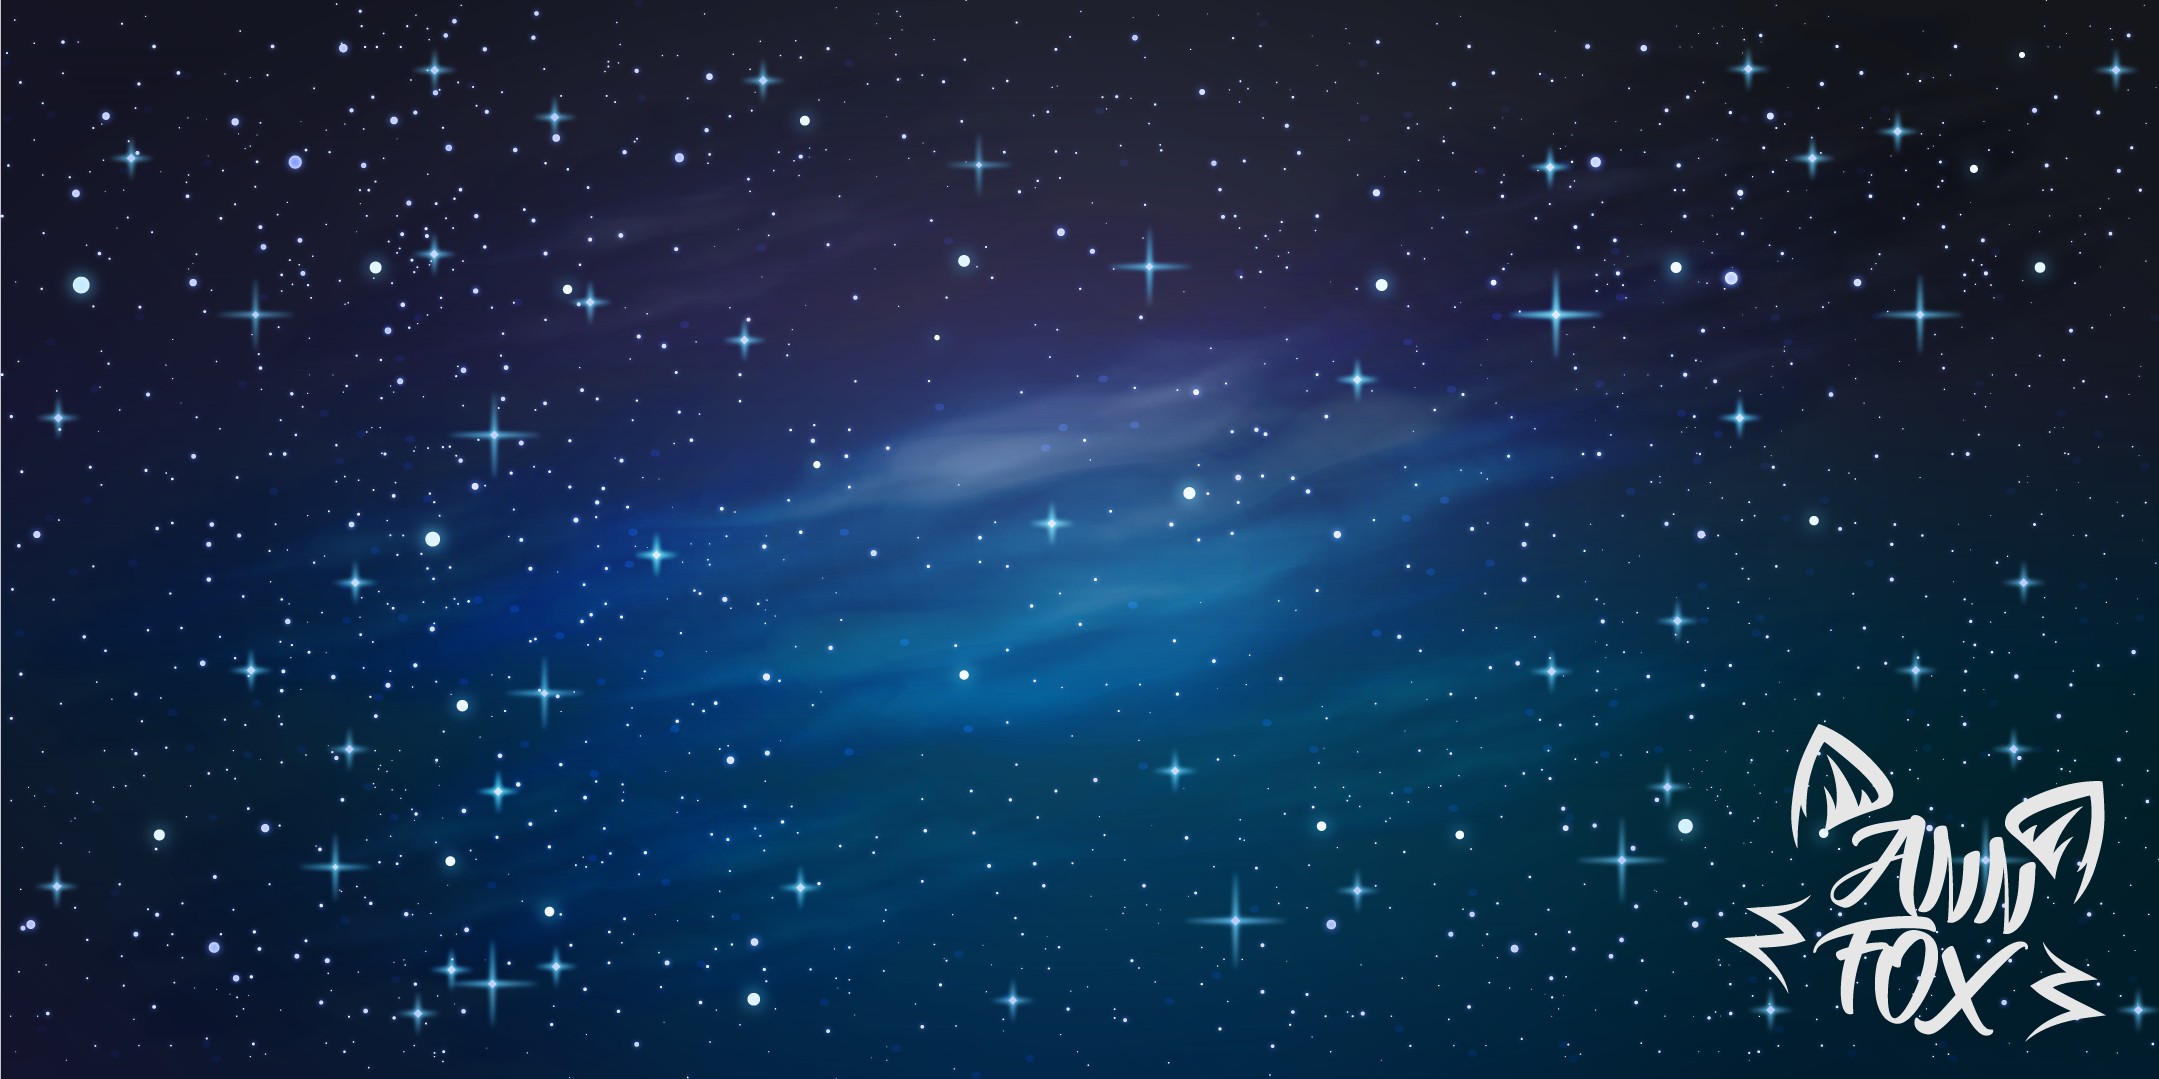 Starry sky background